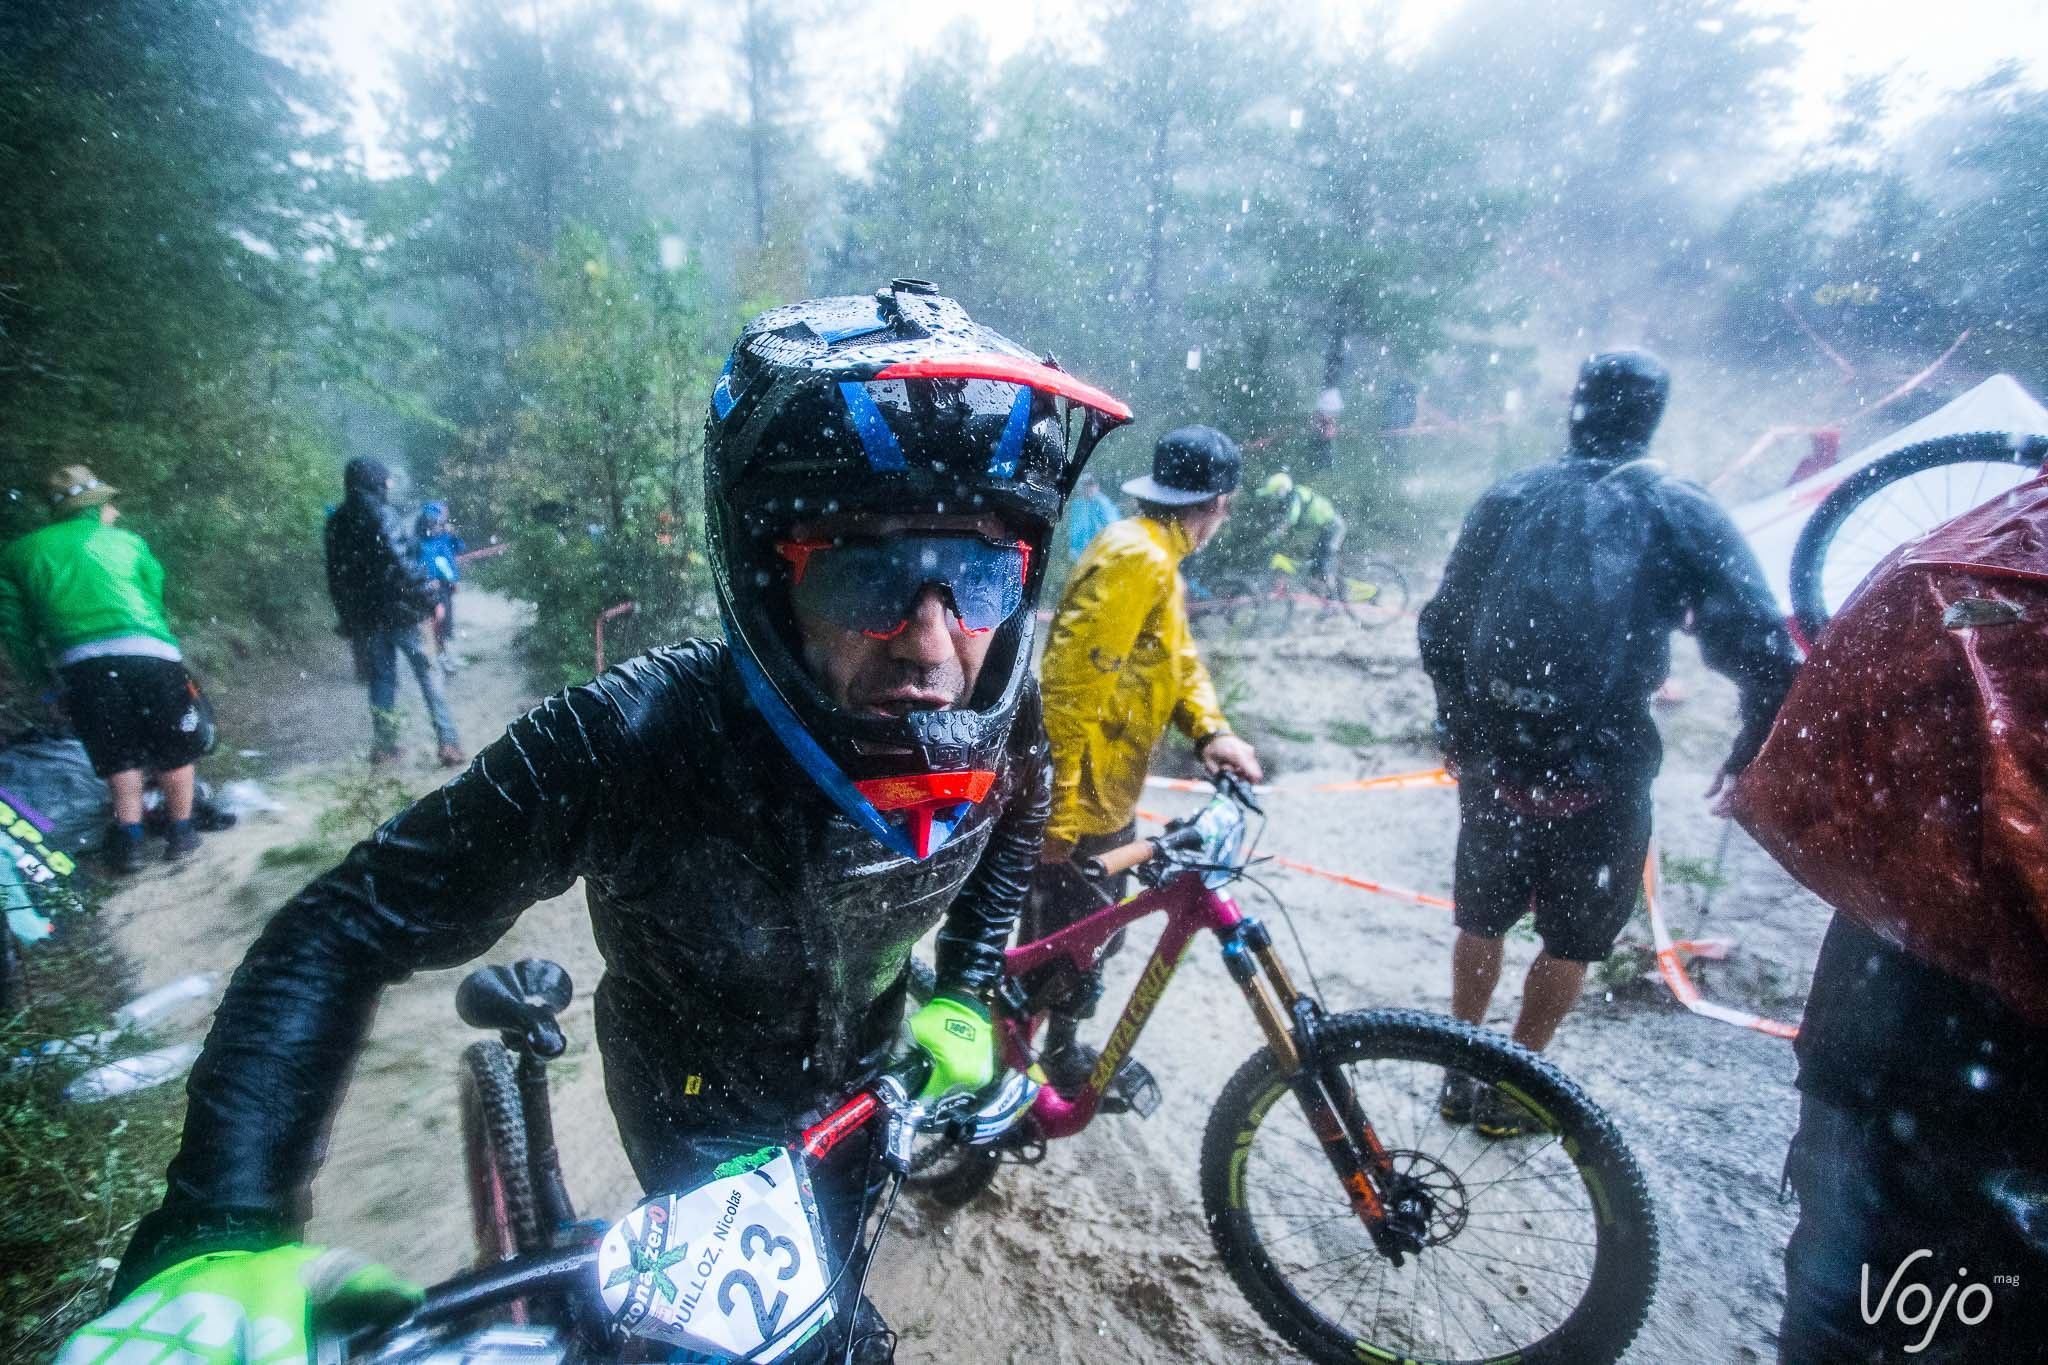 Enduro_World_Series_7_Spain_Ainsa_Zona_Zero_2015_Copyright_VojoMag-25